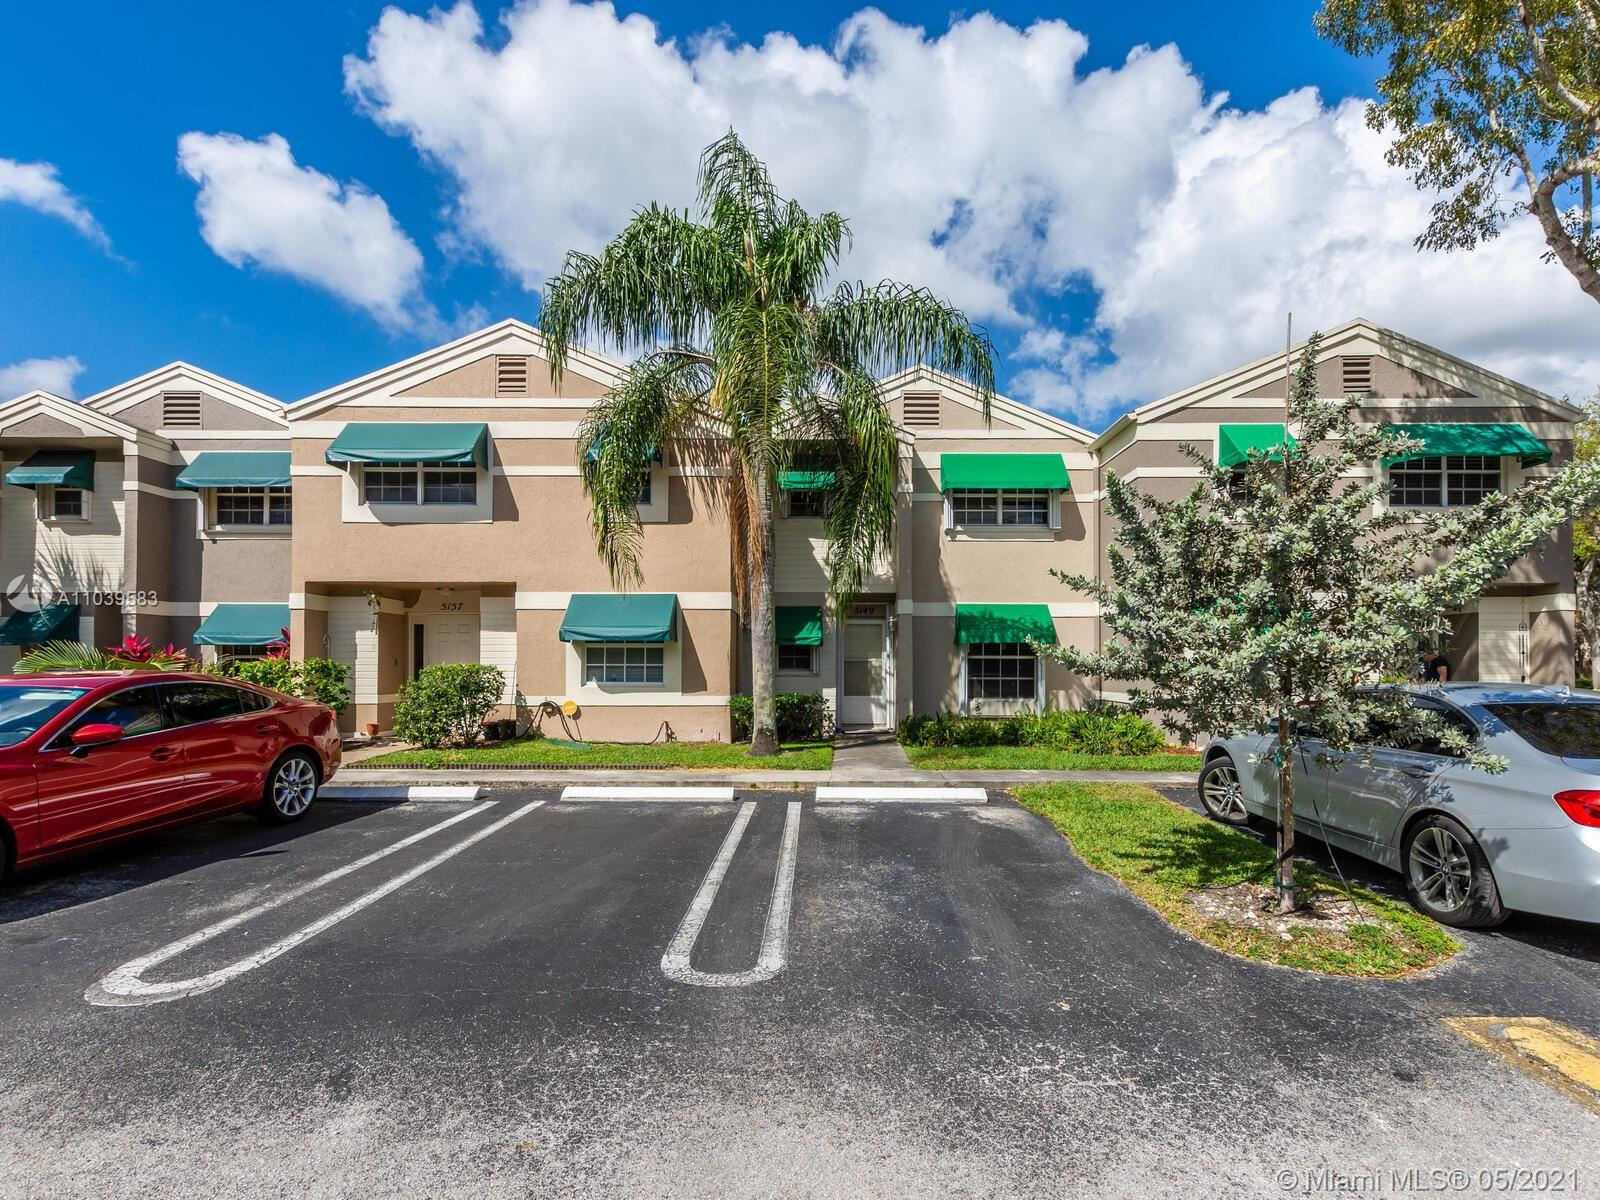 Photo of 5149 SW 122nd Ter, Cooper City, FL 33330 (MLS # A11039583)